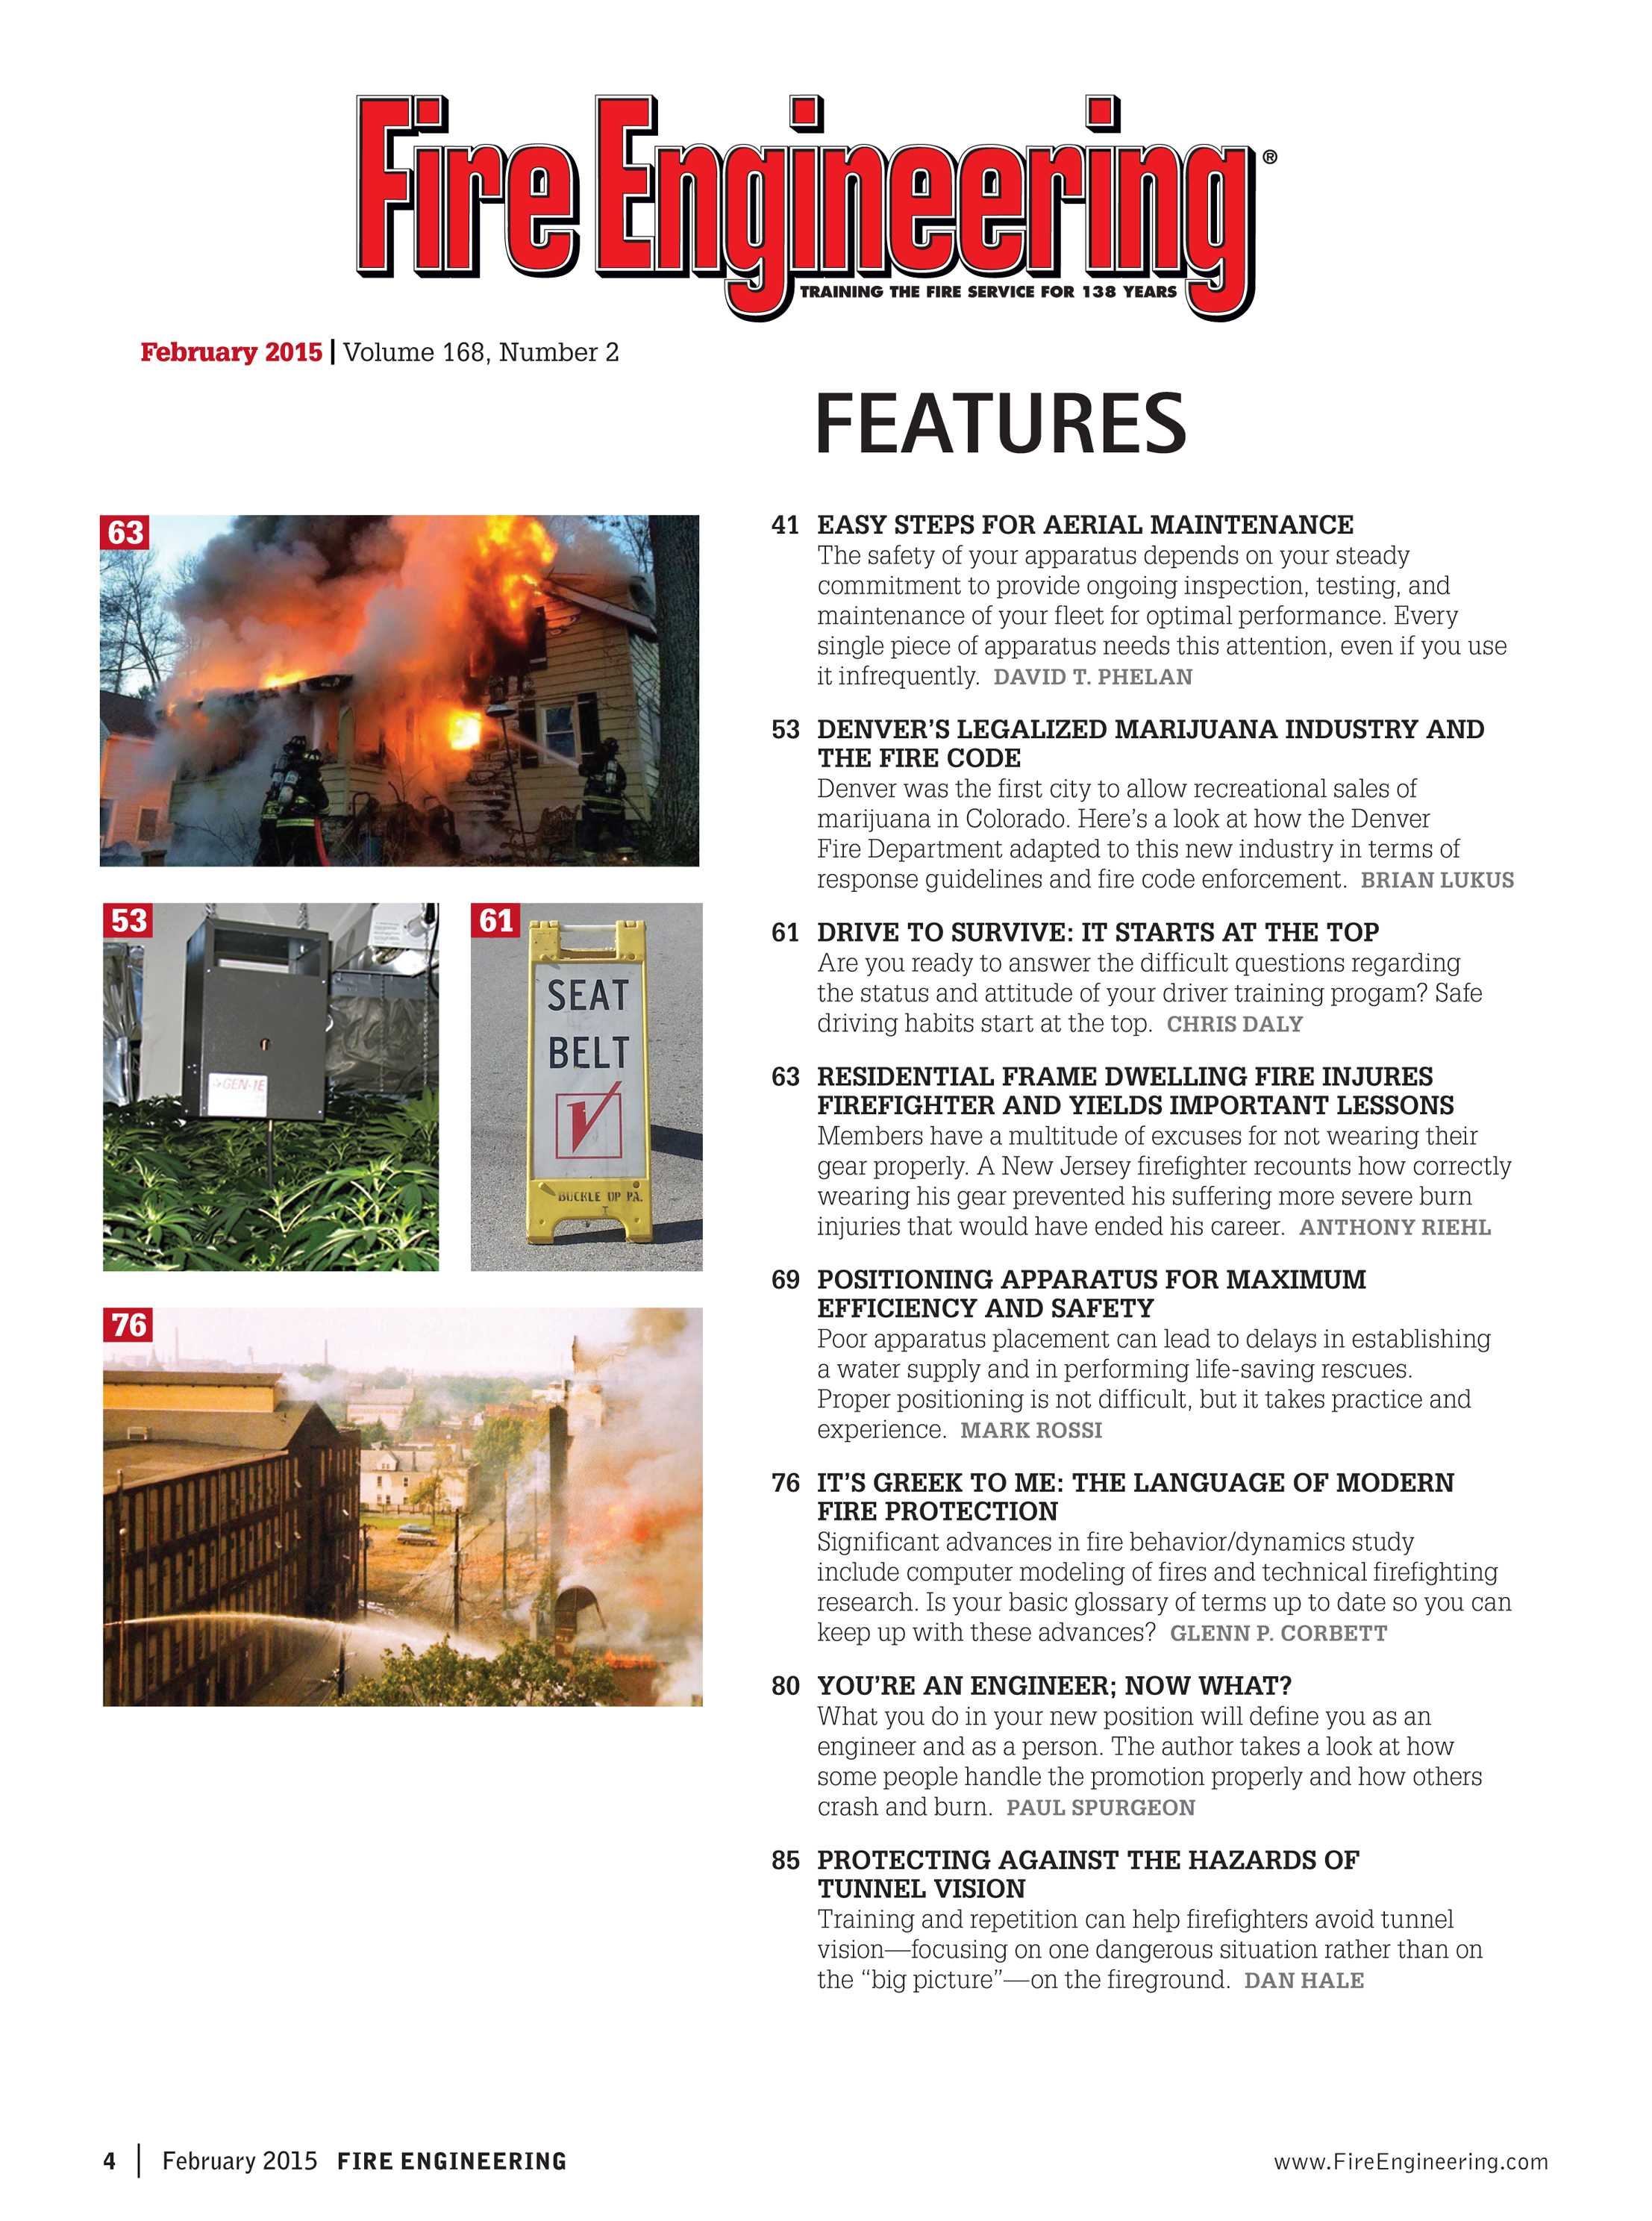 Fire Engineering - February 2015 - page 4